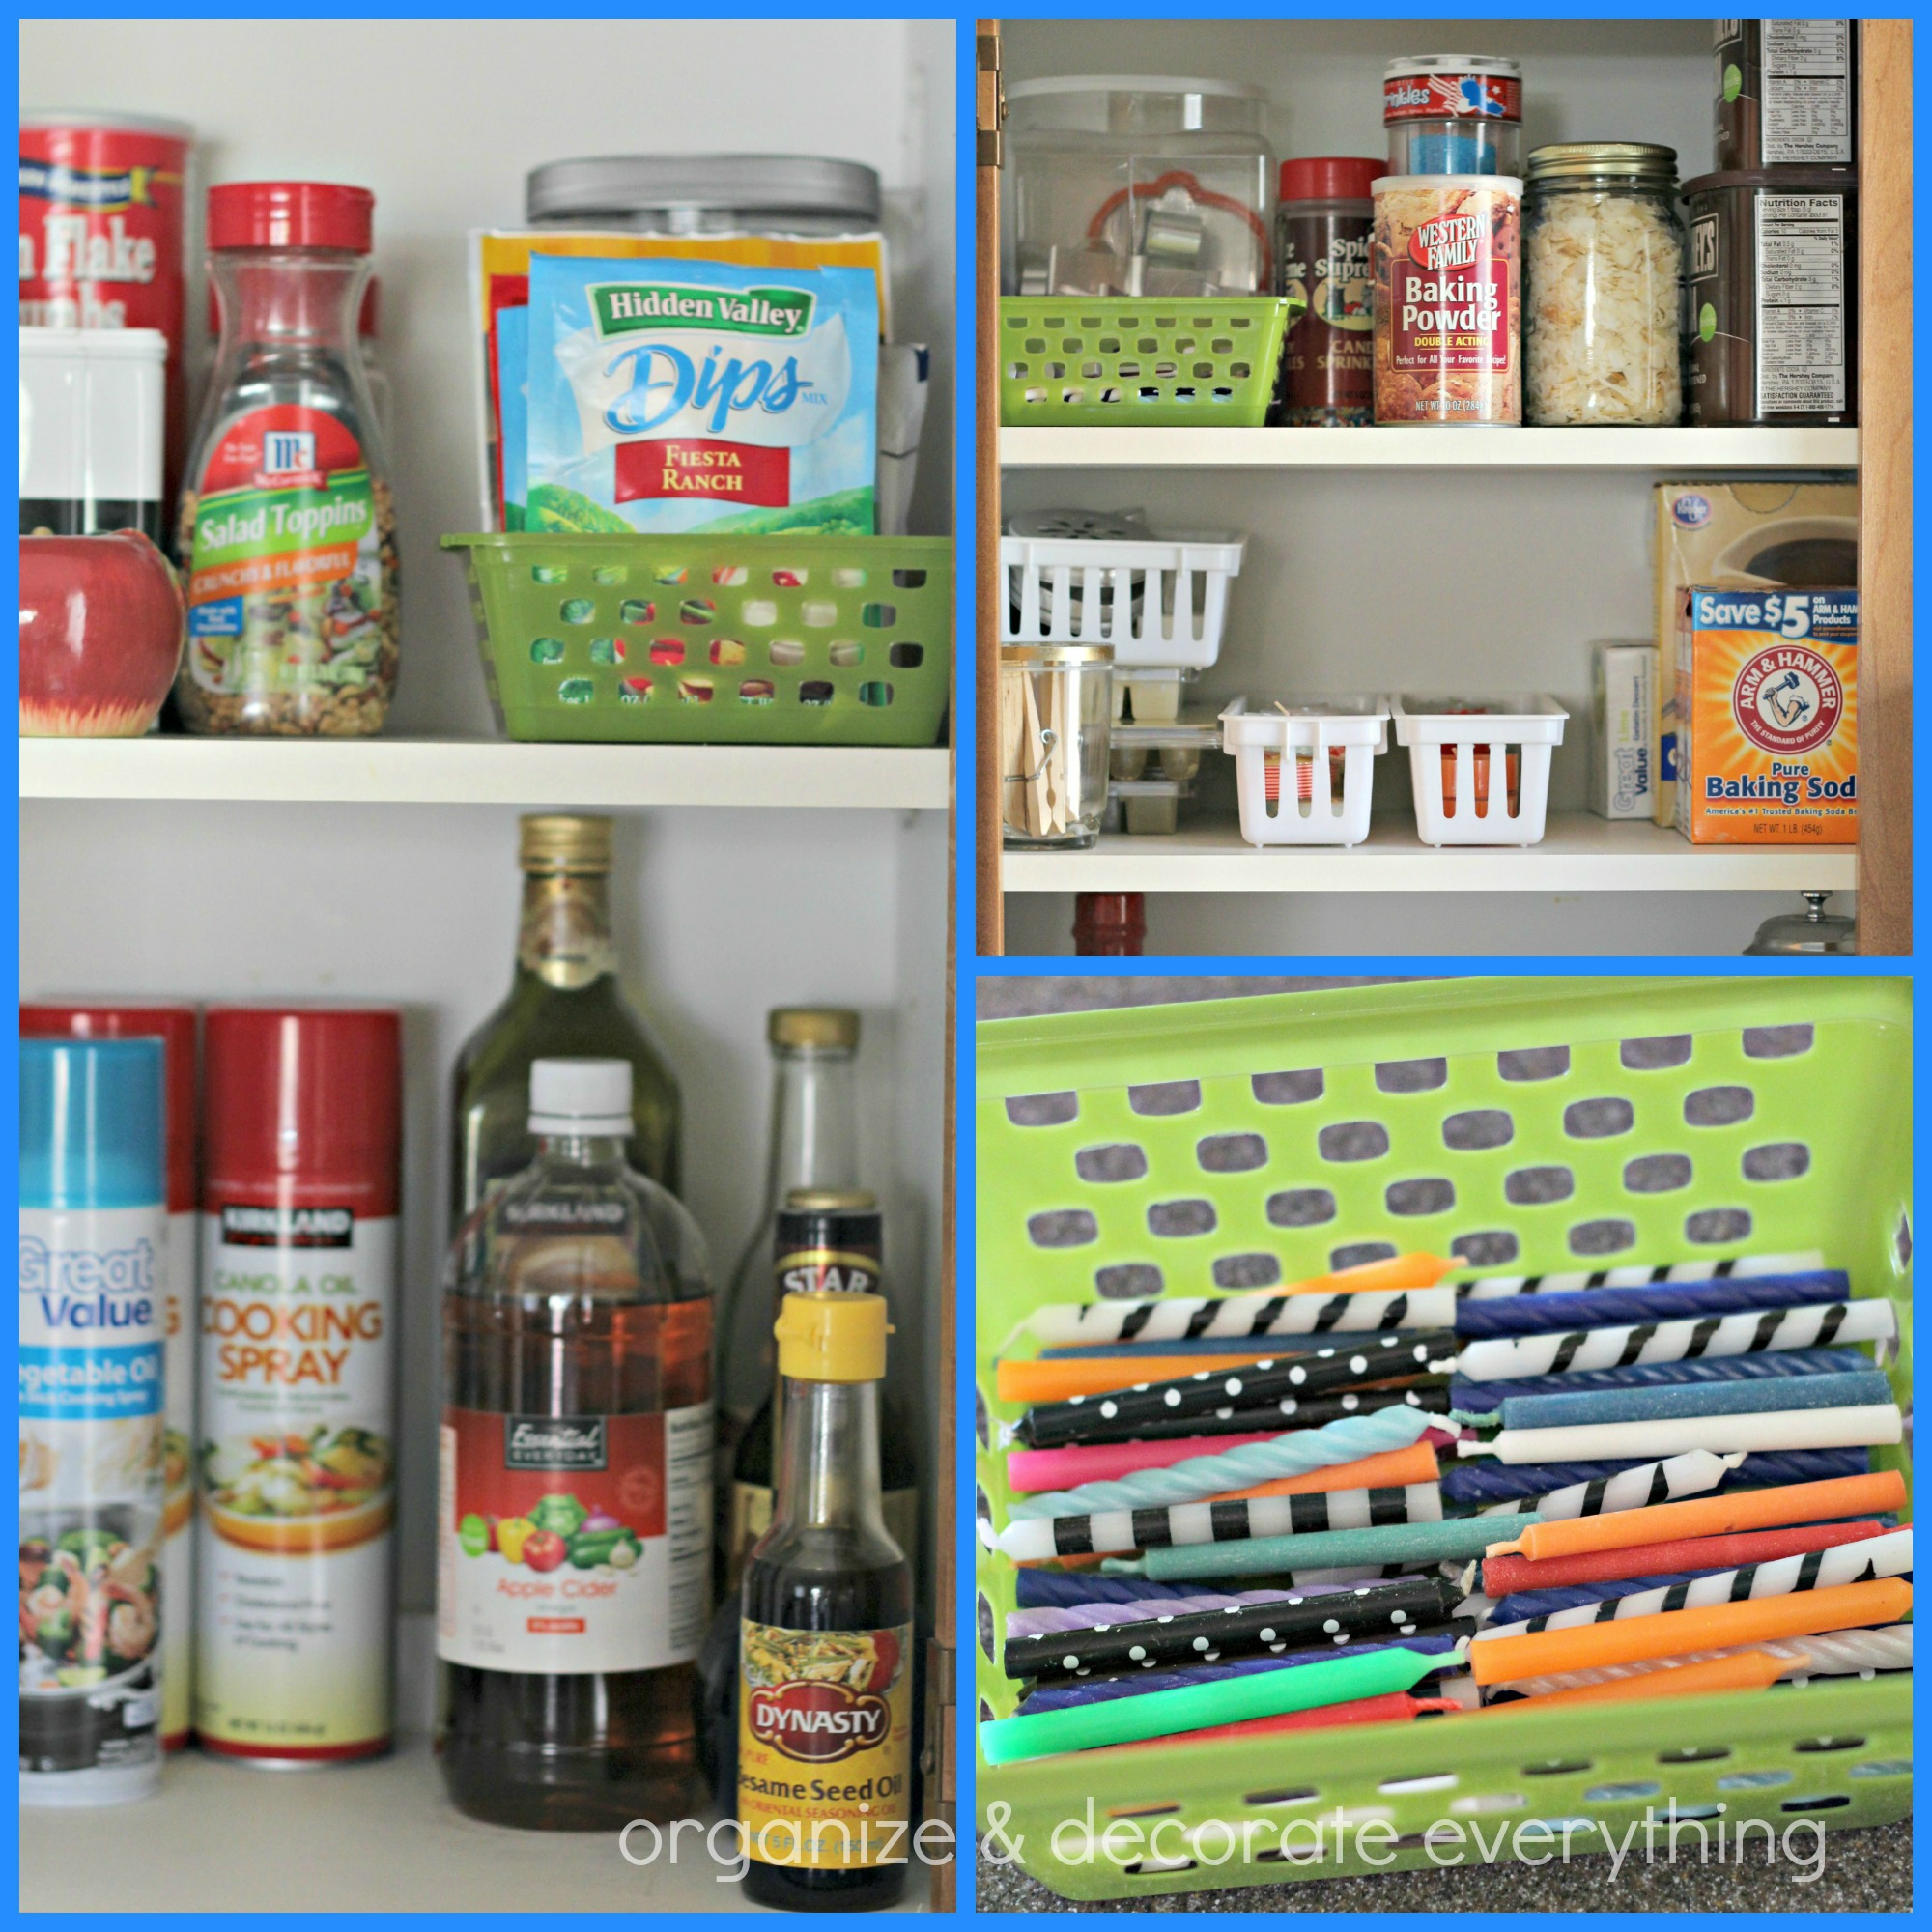 the and style organizing with zdif organize how shocking help container pantry pics concept of my to kitchen store from